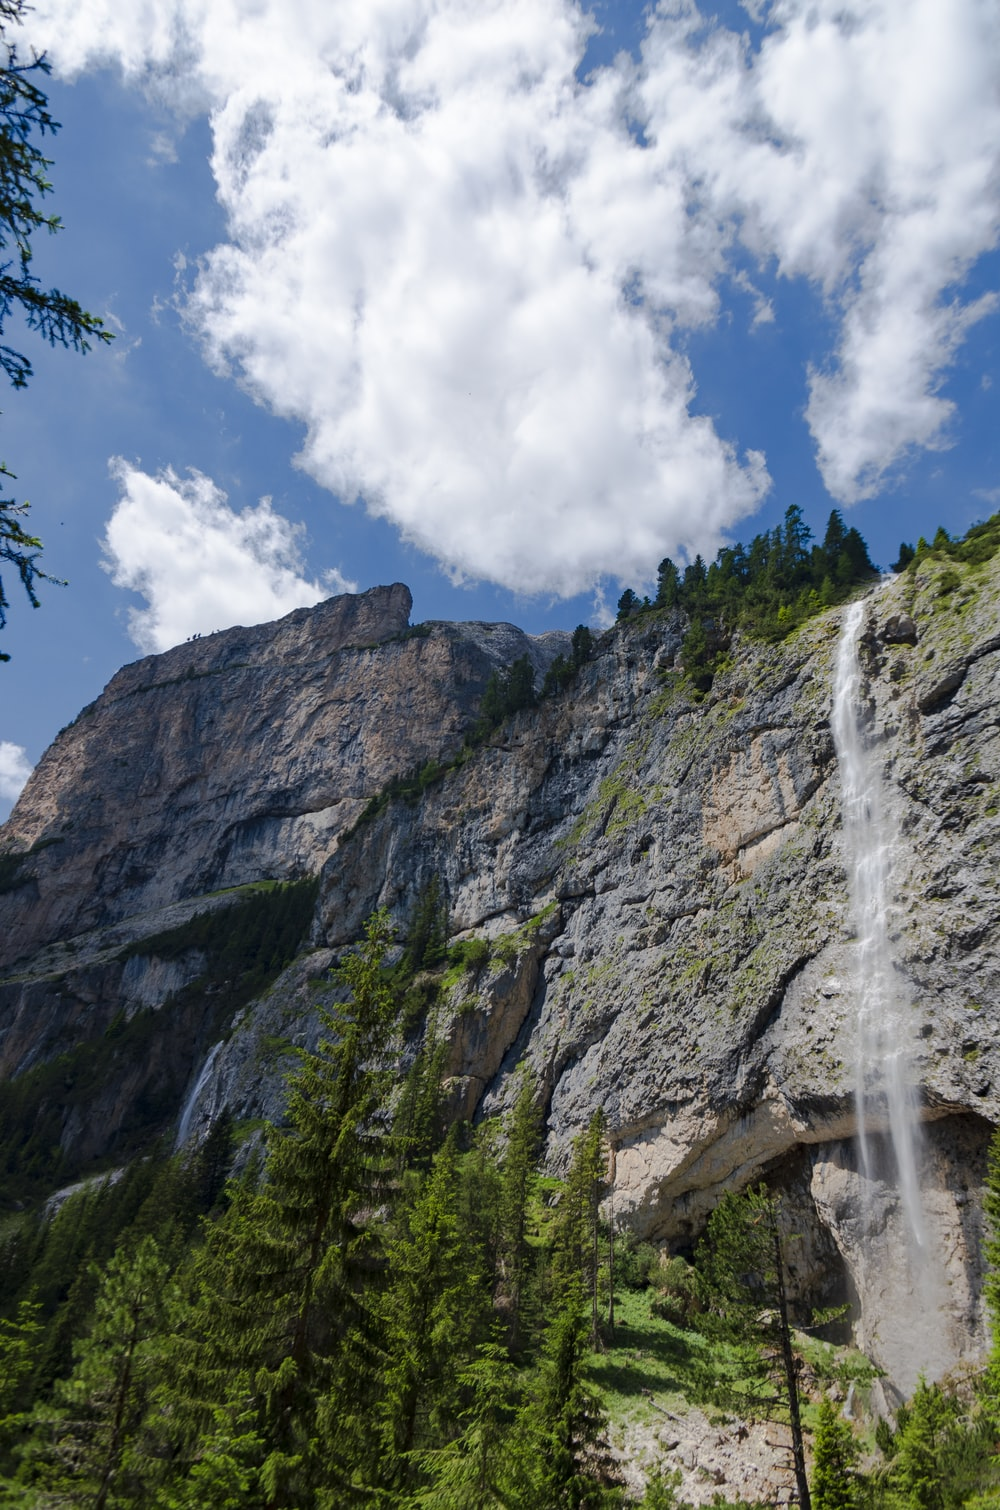 waterfalls on rocky mountain under blue and white cloudy sky during daytime